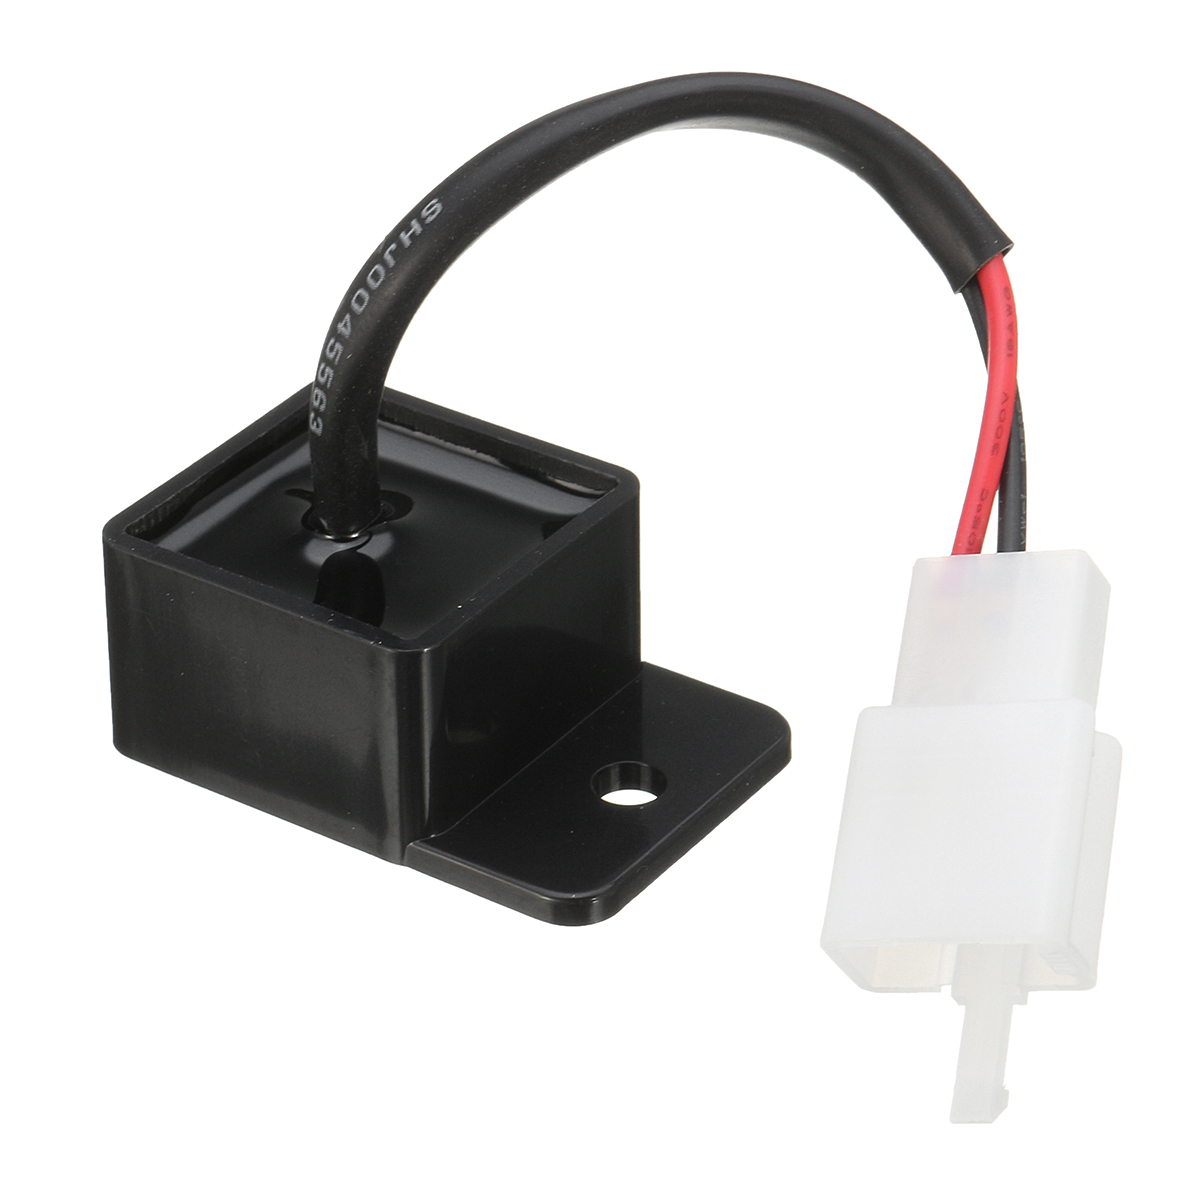 hight resolution of 2 pin led flasher relay for motorcycle turn signal lights sale download image 3 pin led flasher relay wiring pc android iphone and